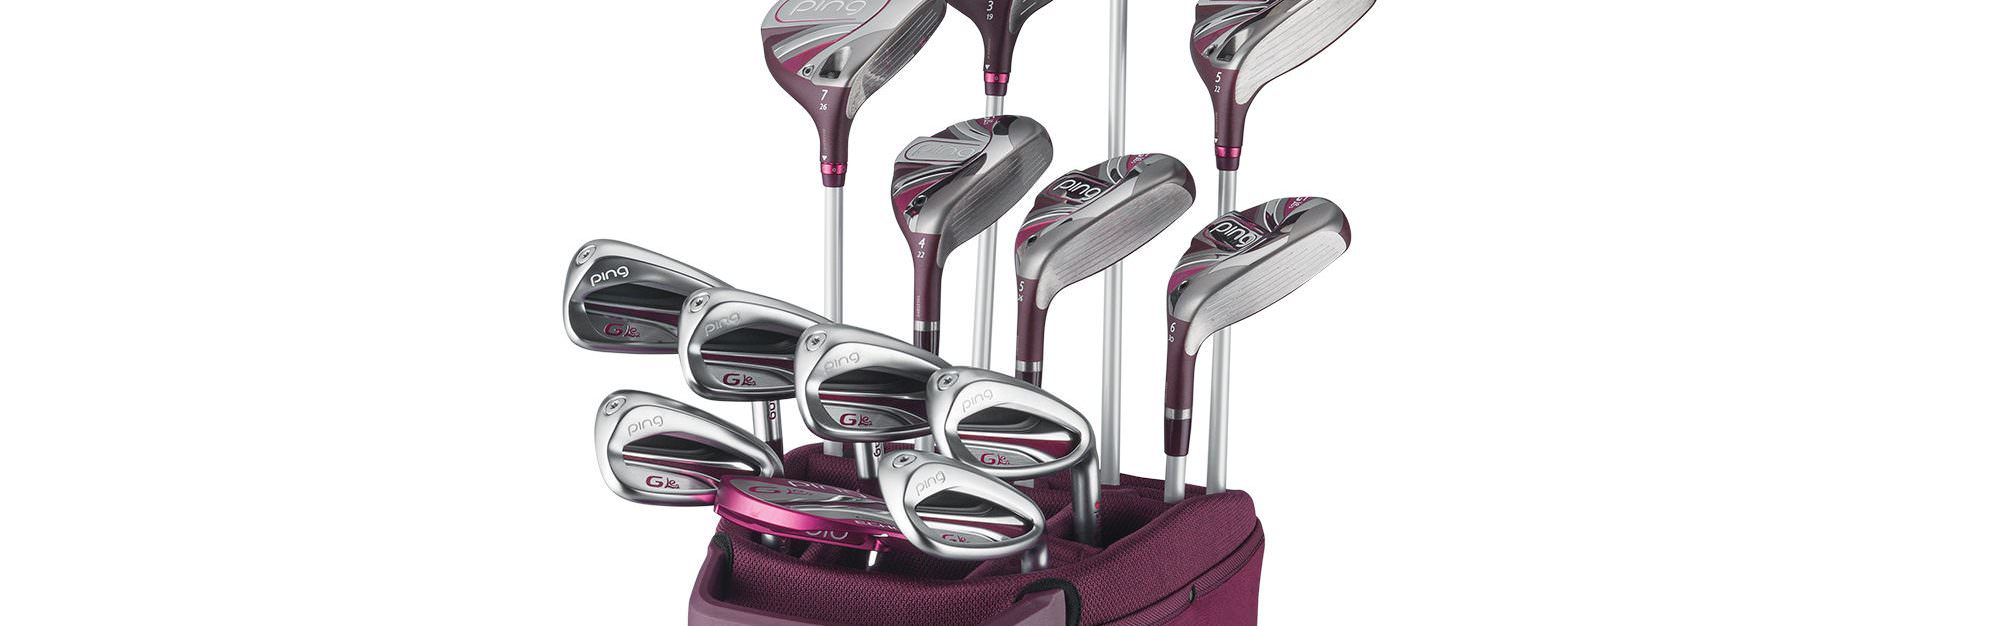 Review: Ping G Le 2 women's clubs